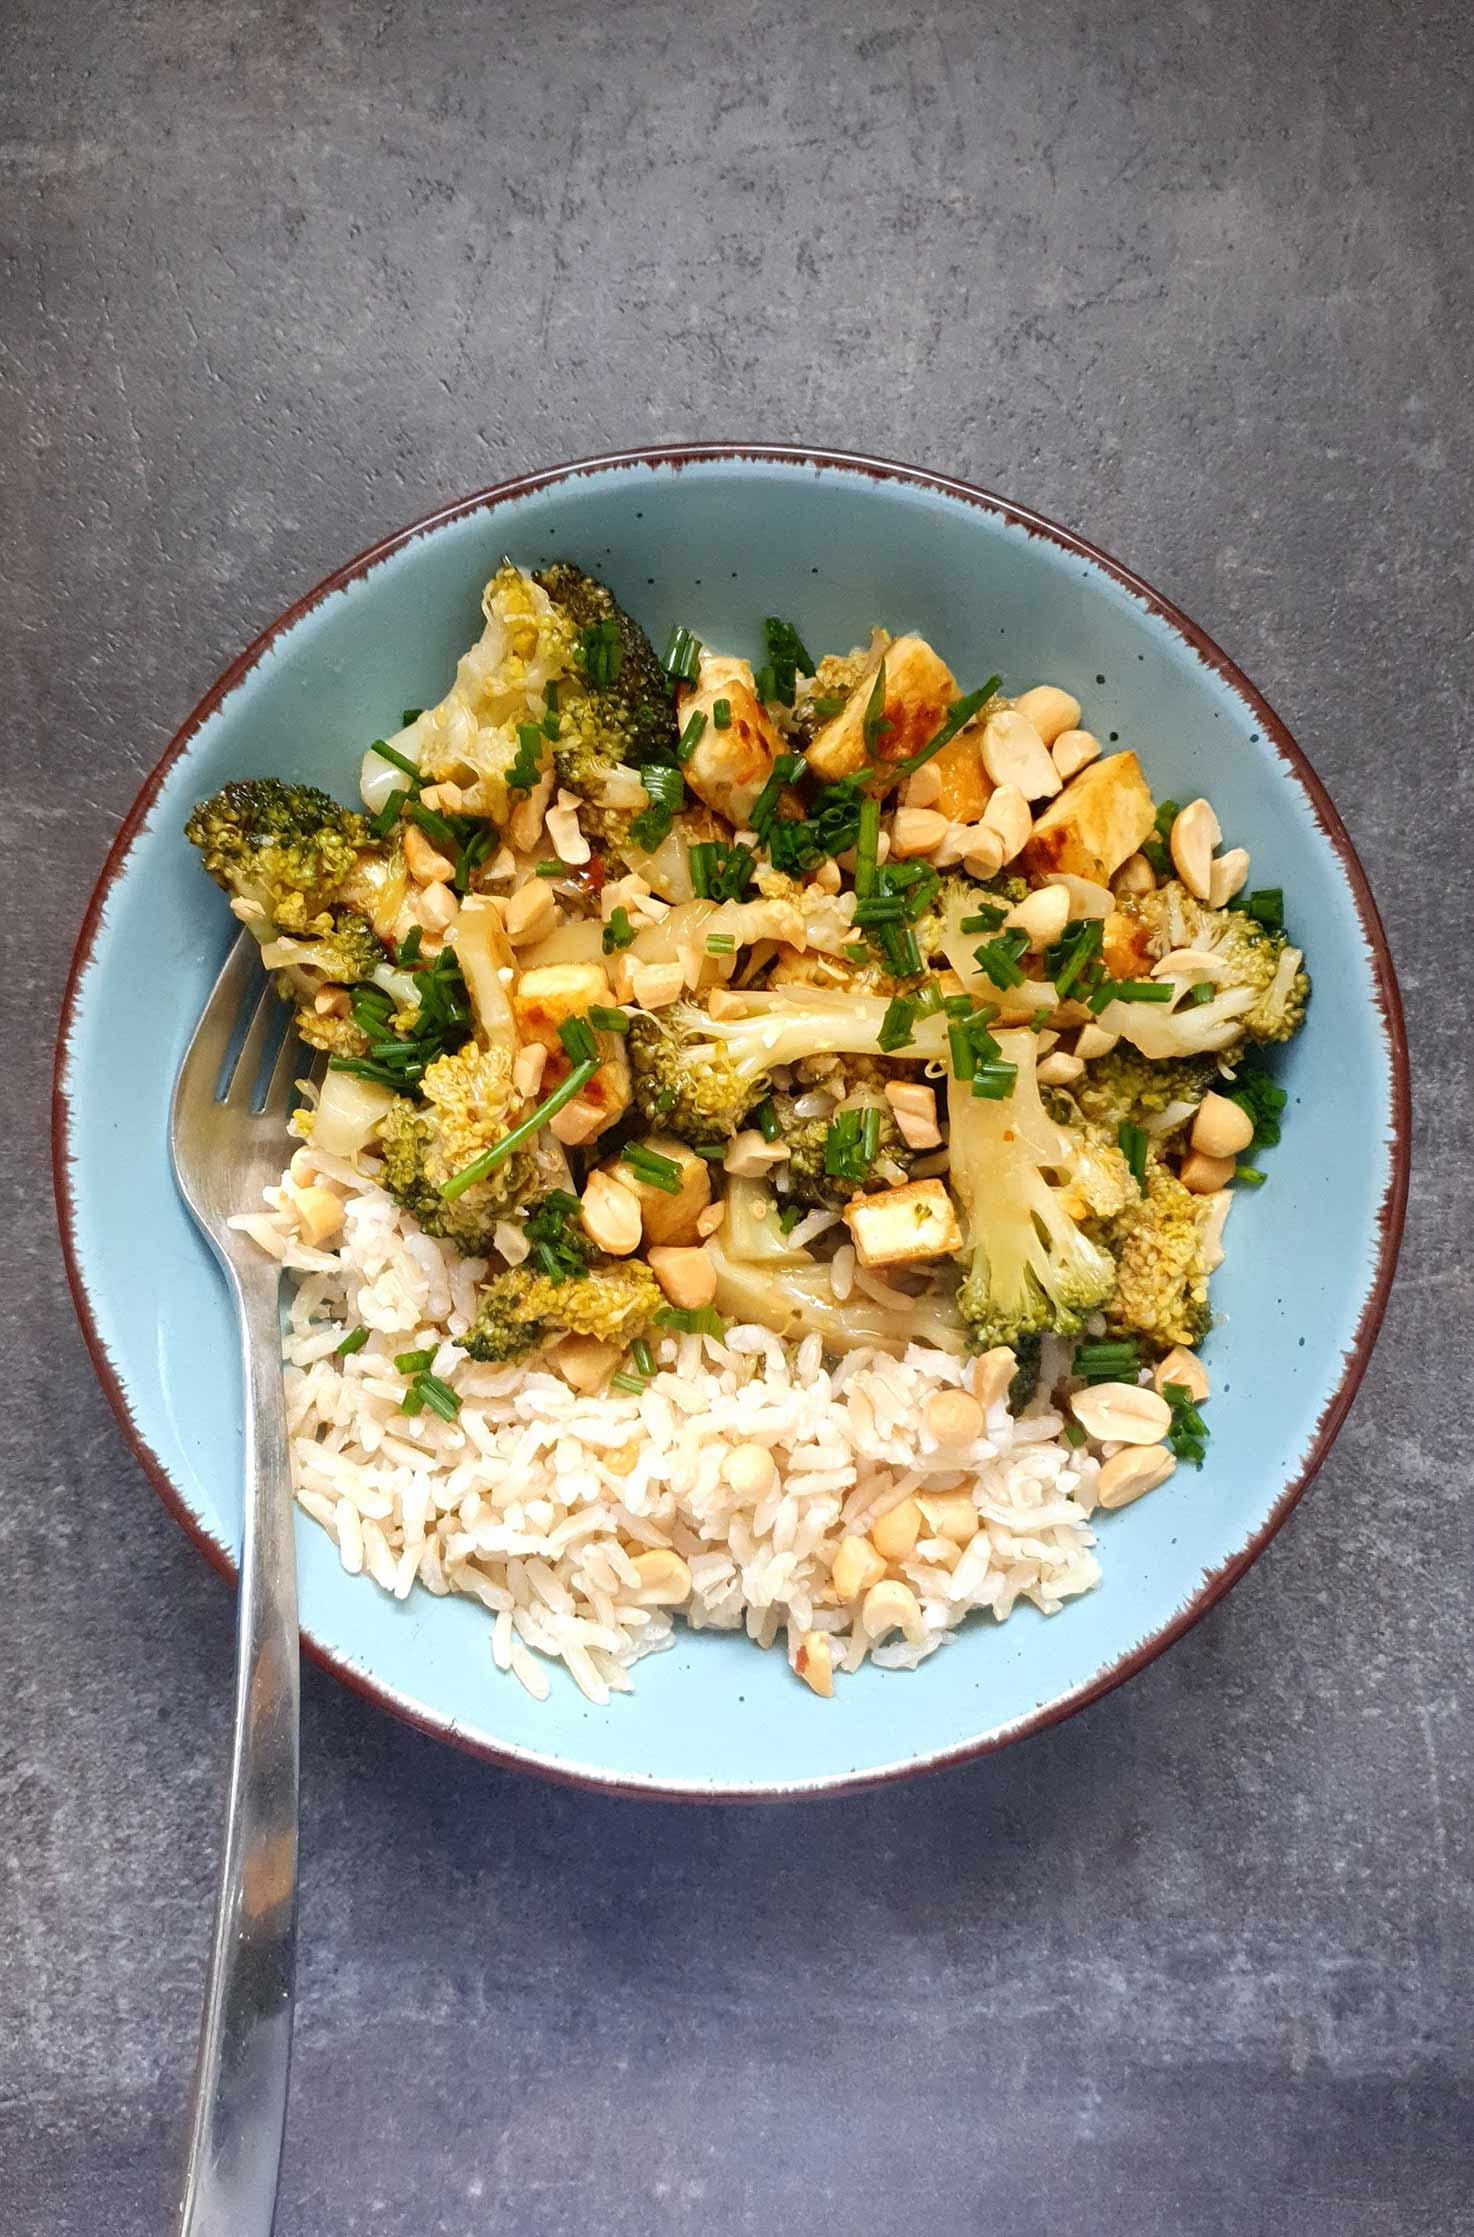 Easy Broccoli Stir Fry with Brown Rice